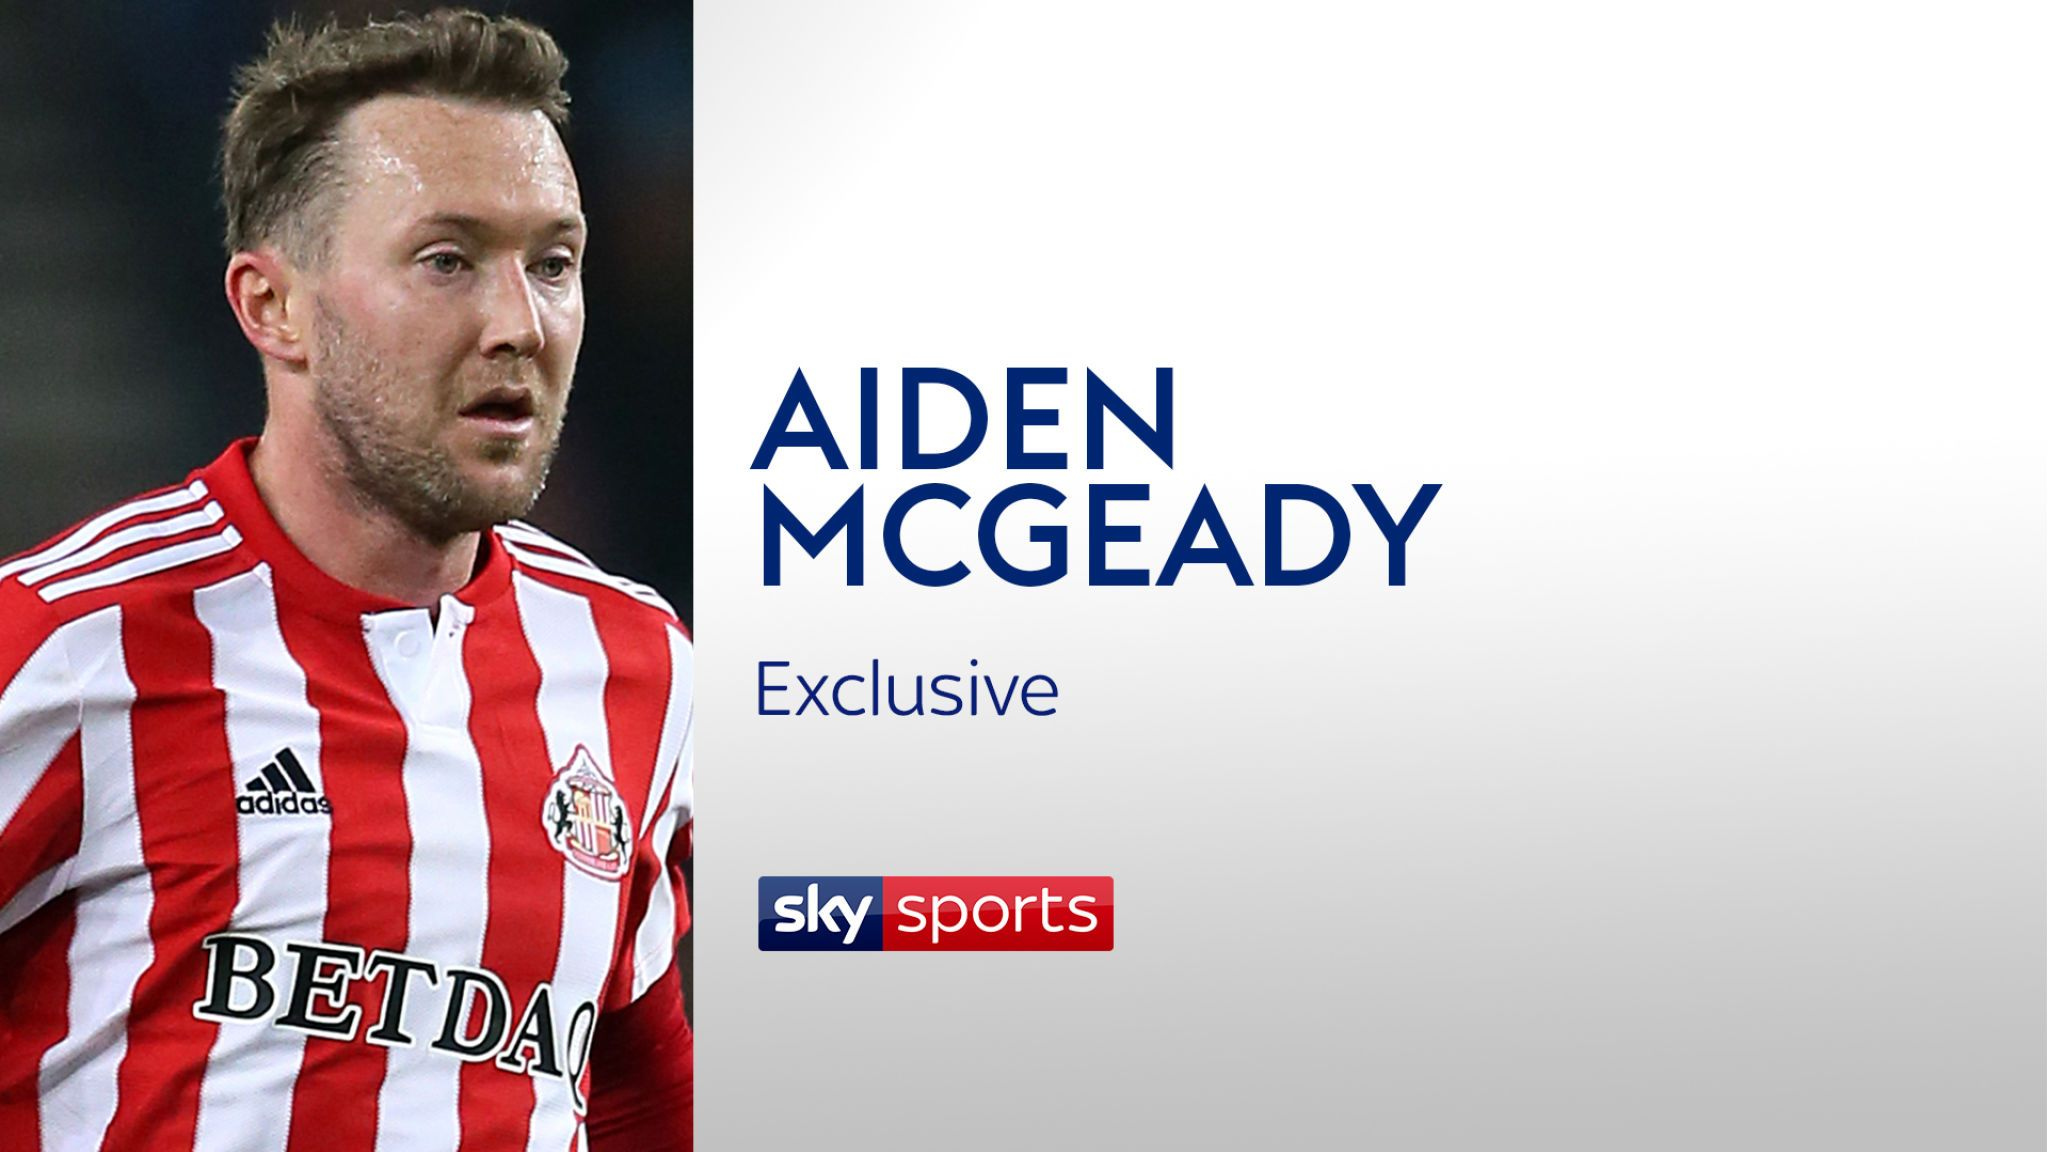 Aiden McGeady Sunderland under Jack Ross is different and 2048x1152